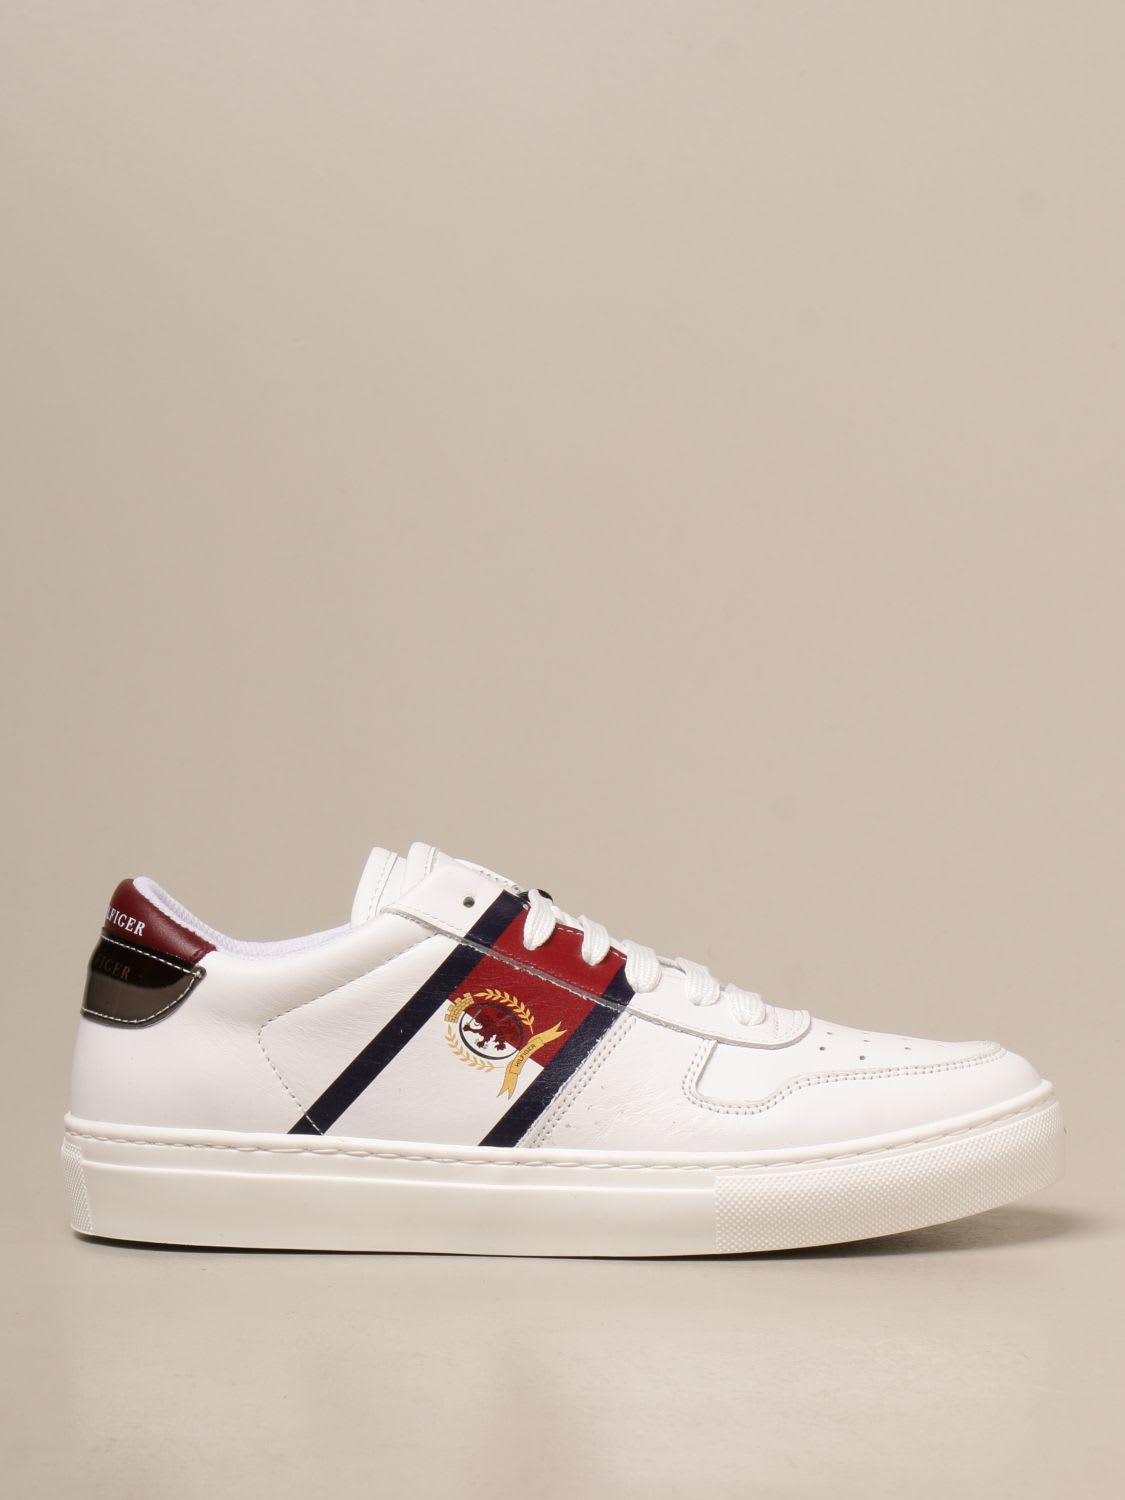 Hilfiger Collection Sneakers Shoes Women Hilfiger Collection